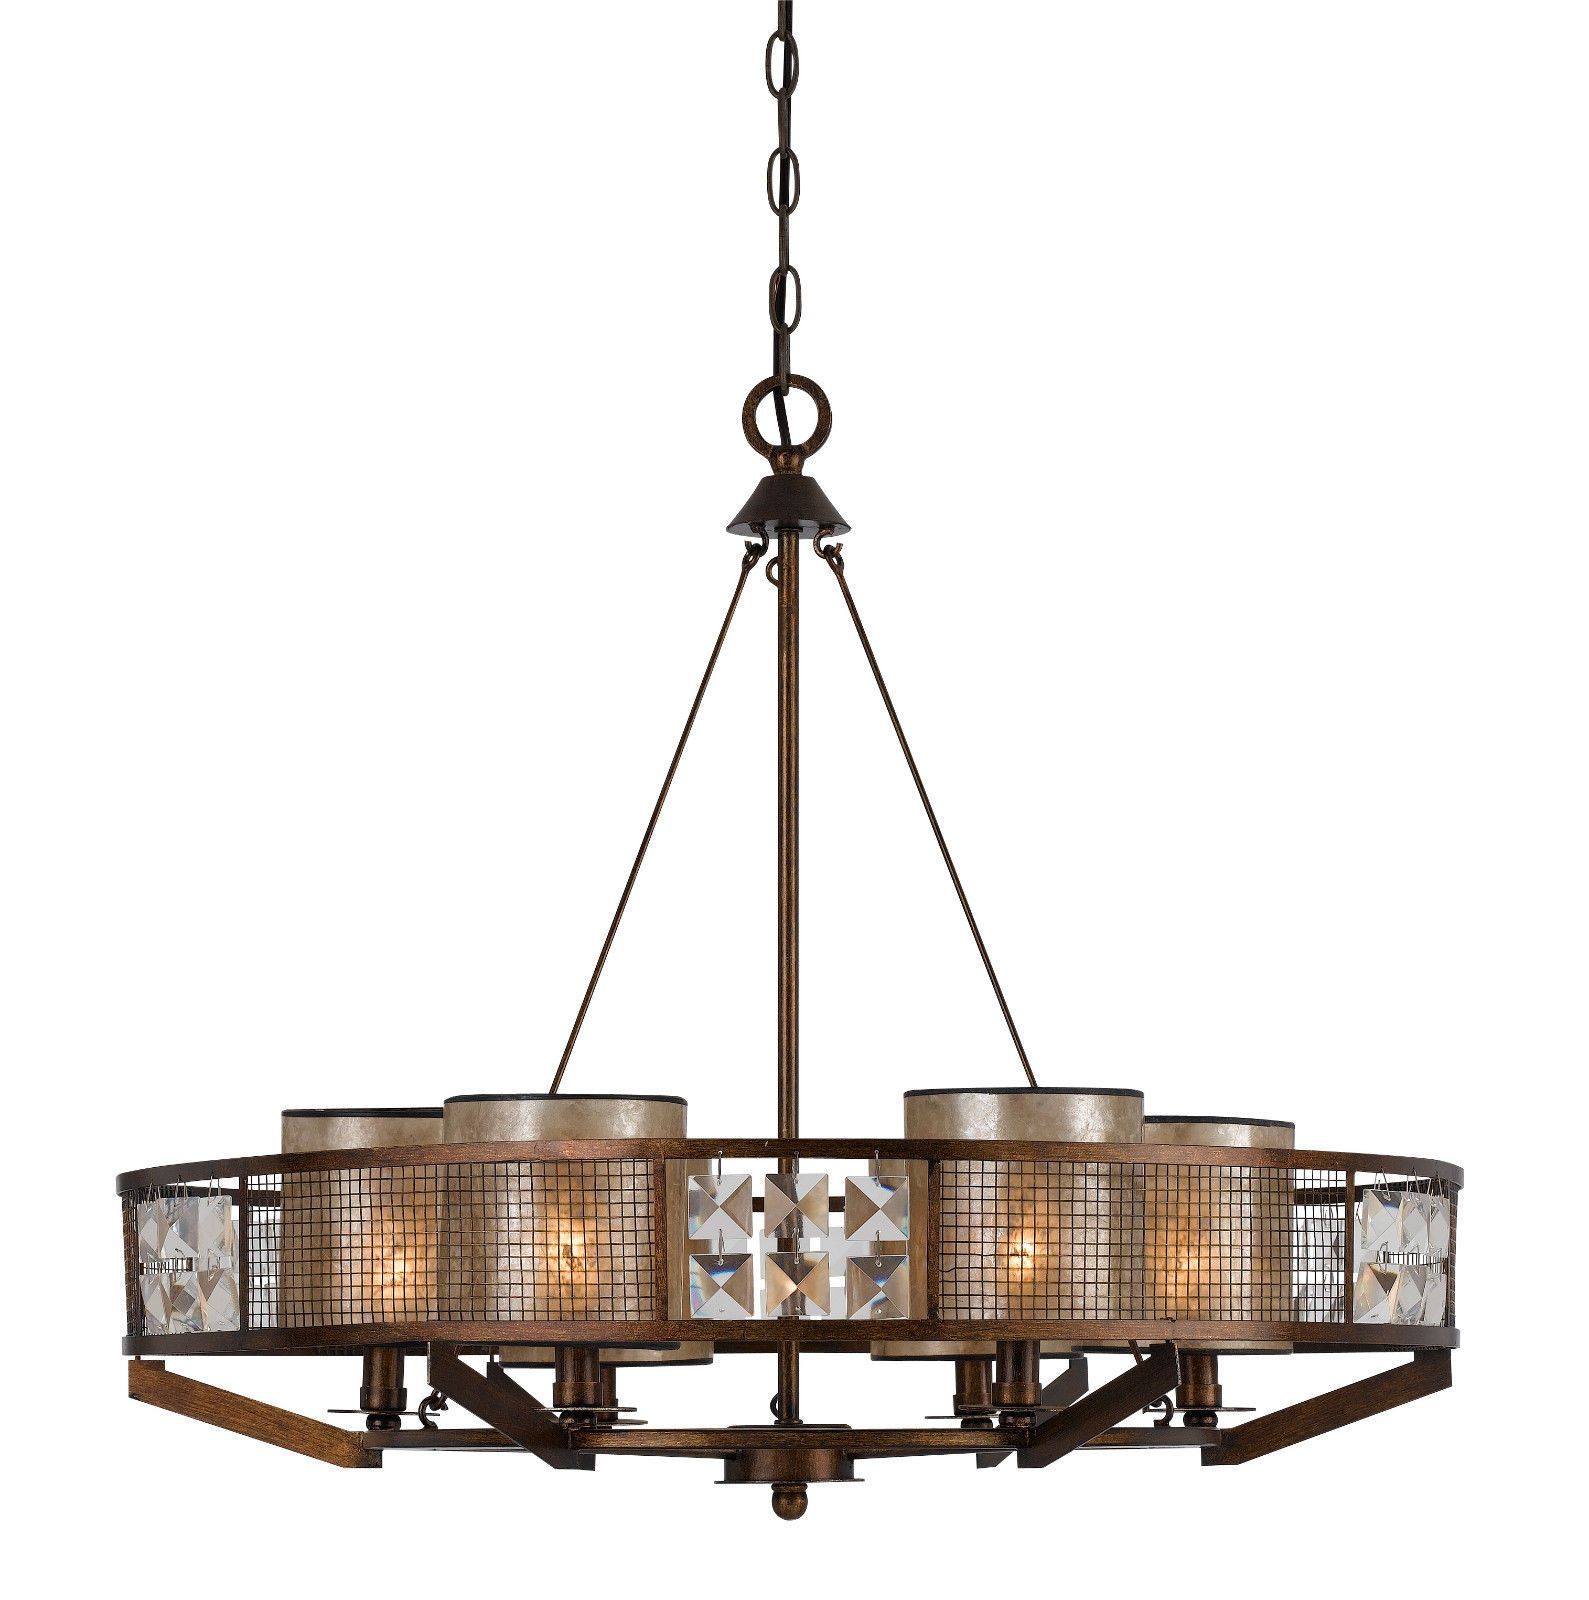 Iron Wood Crystal Chandelier Mica Shades 28 Wx25 H Iron Chandeliers Cal Lighting Chandelier Shades